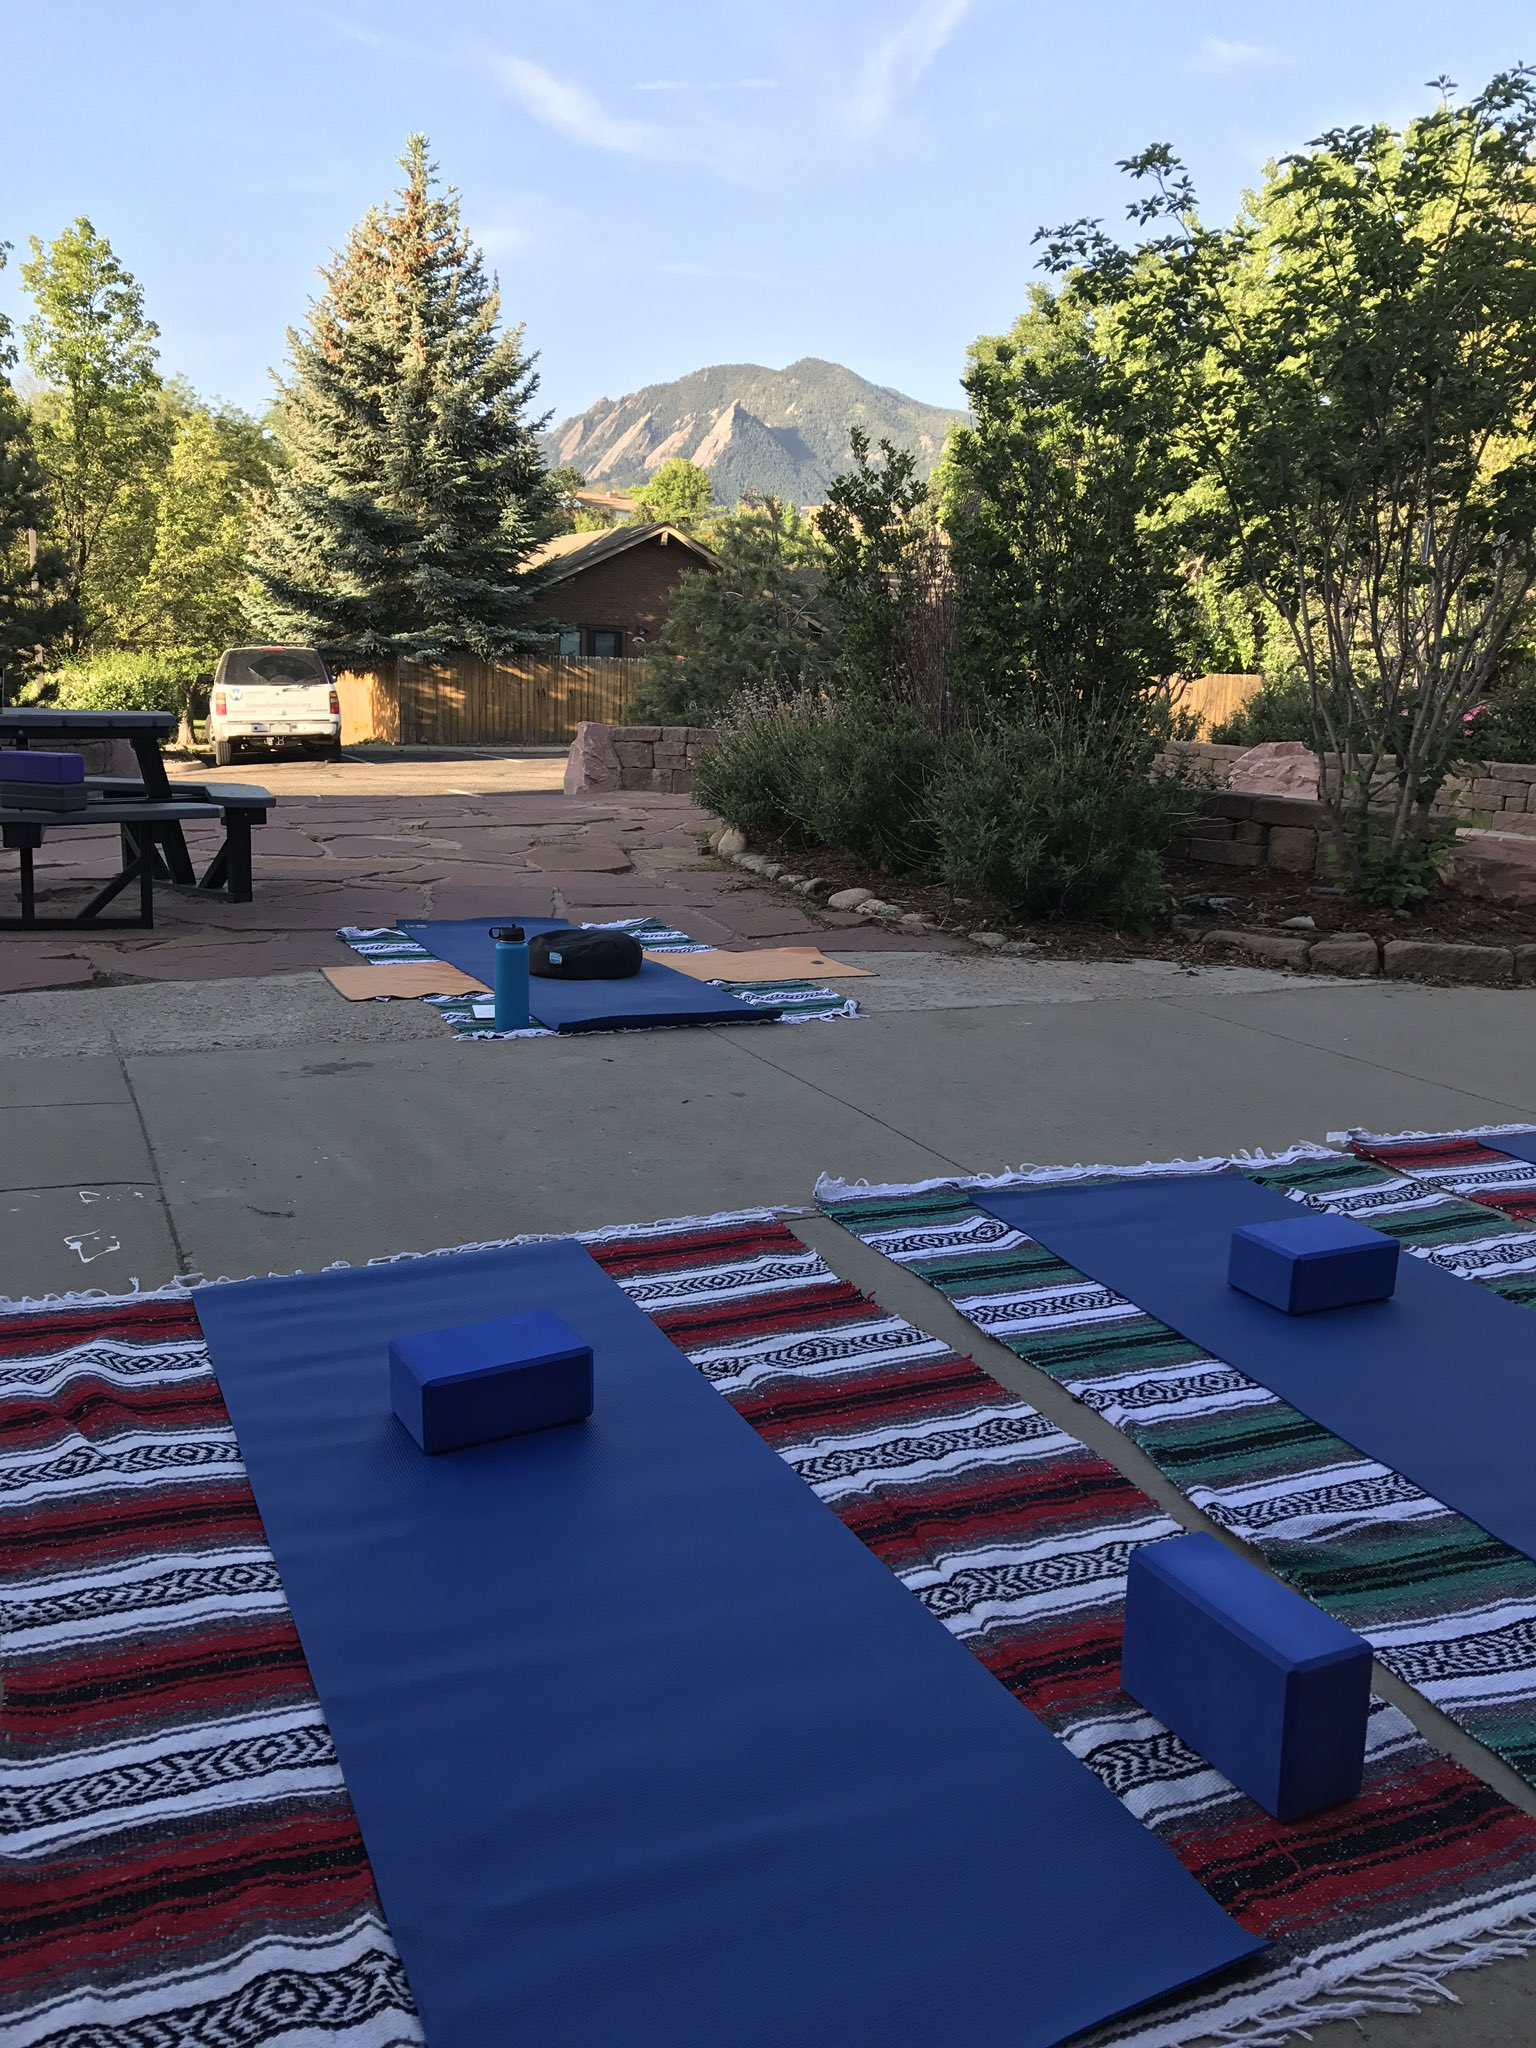 How do you start your day? With a stretch, with a shout, with a breath? Join me for yoga on the patio at 7:15. #tvrse17 #startyourdayright https://t.co/rZLEBpmJju